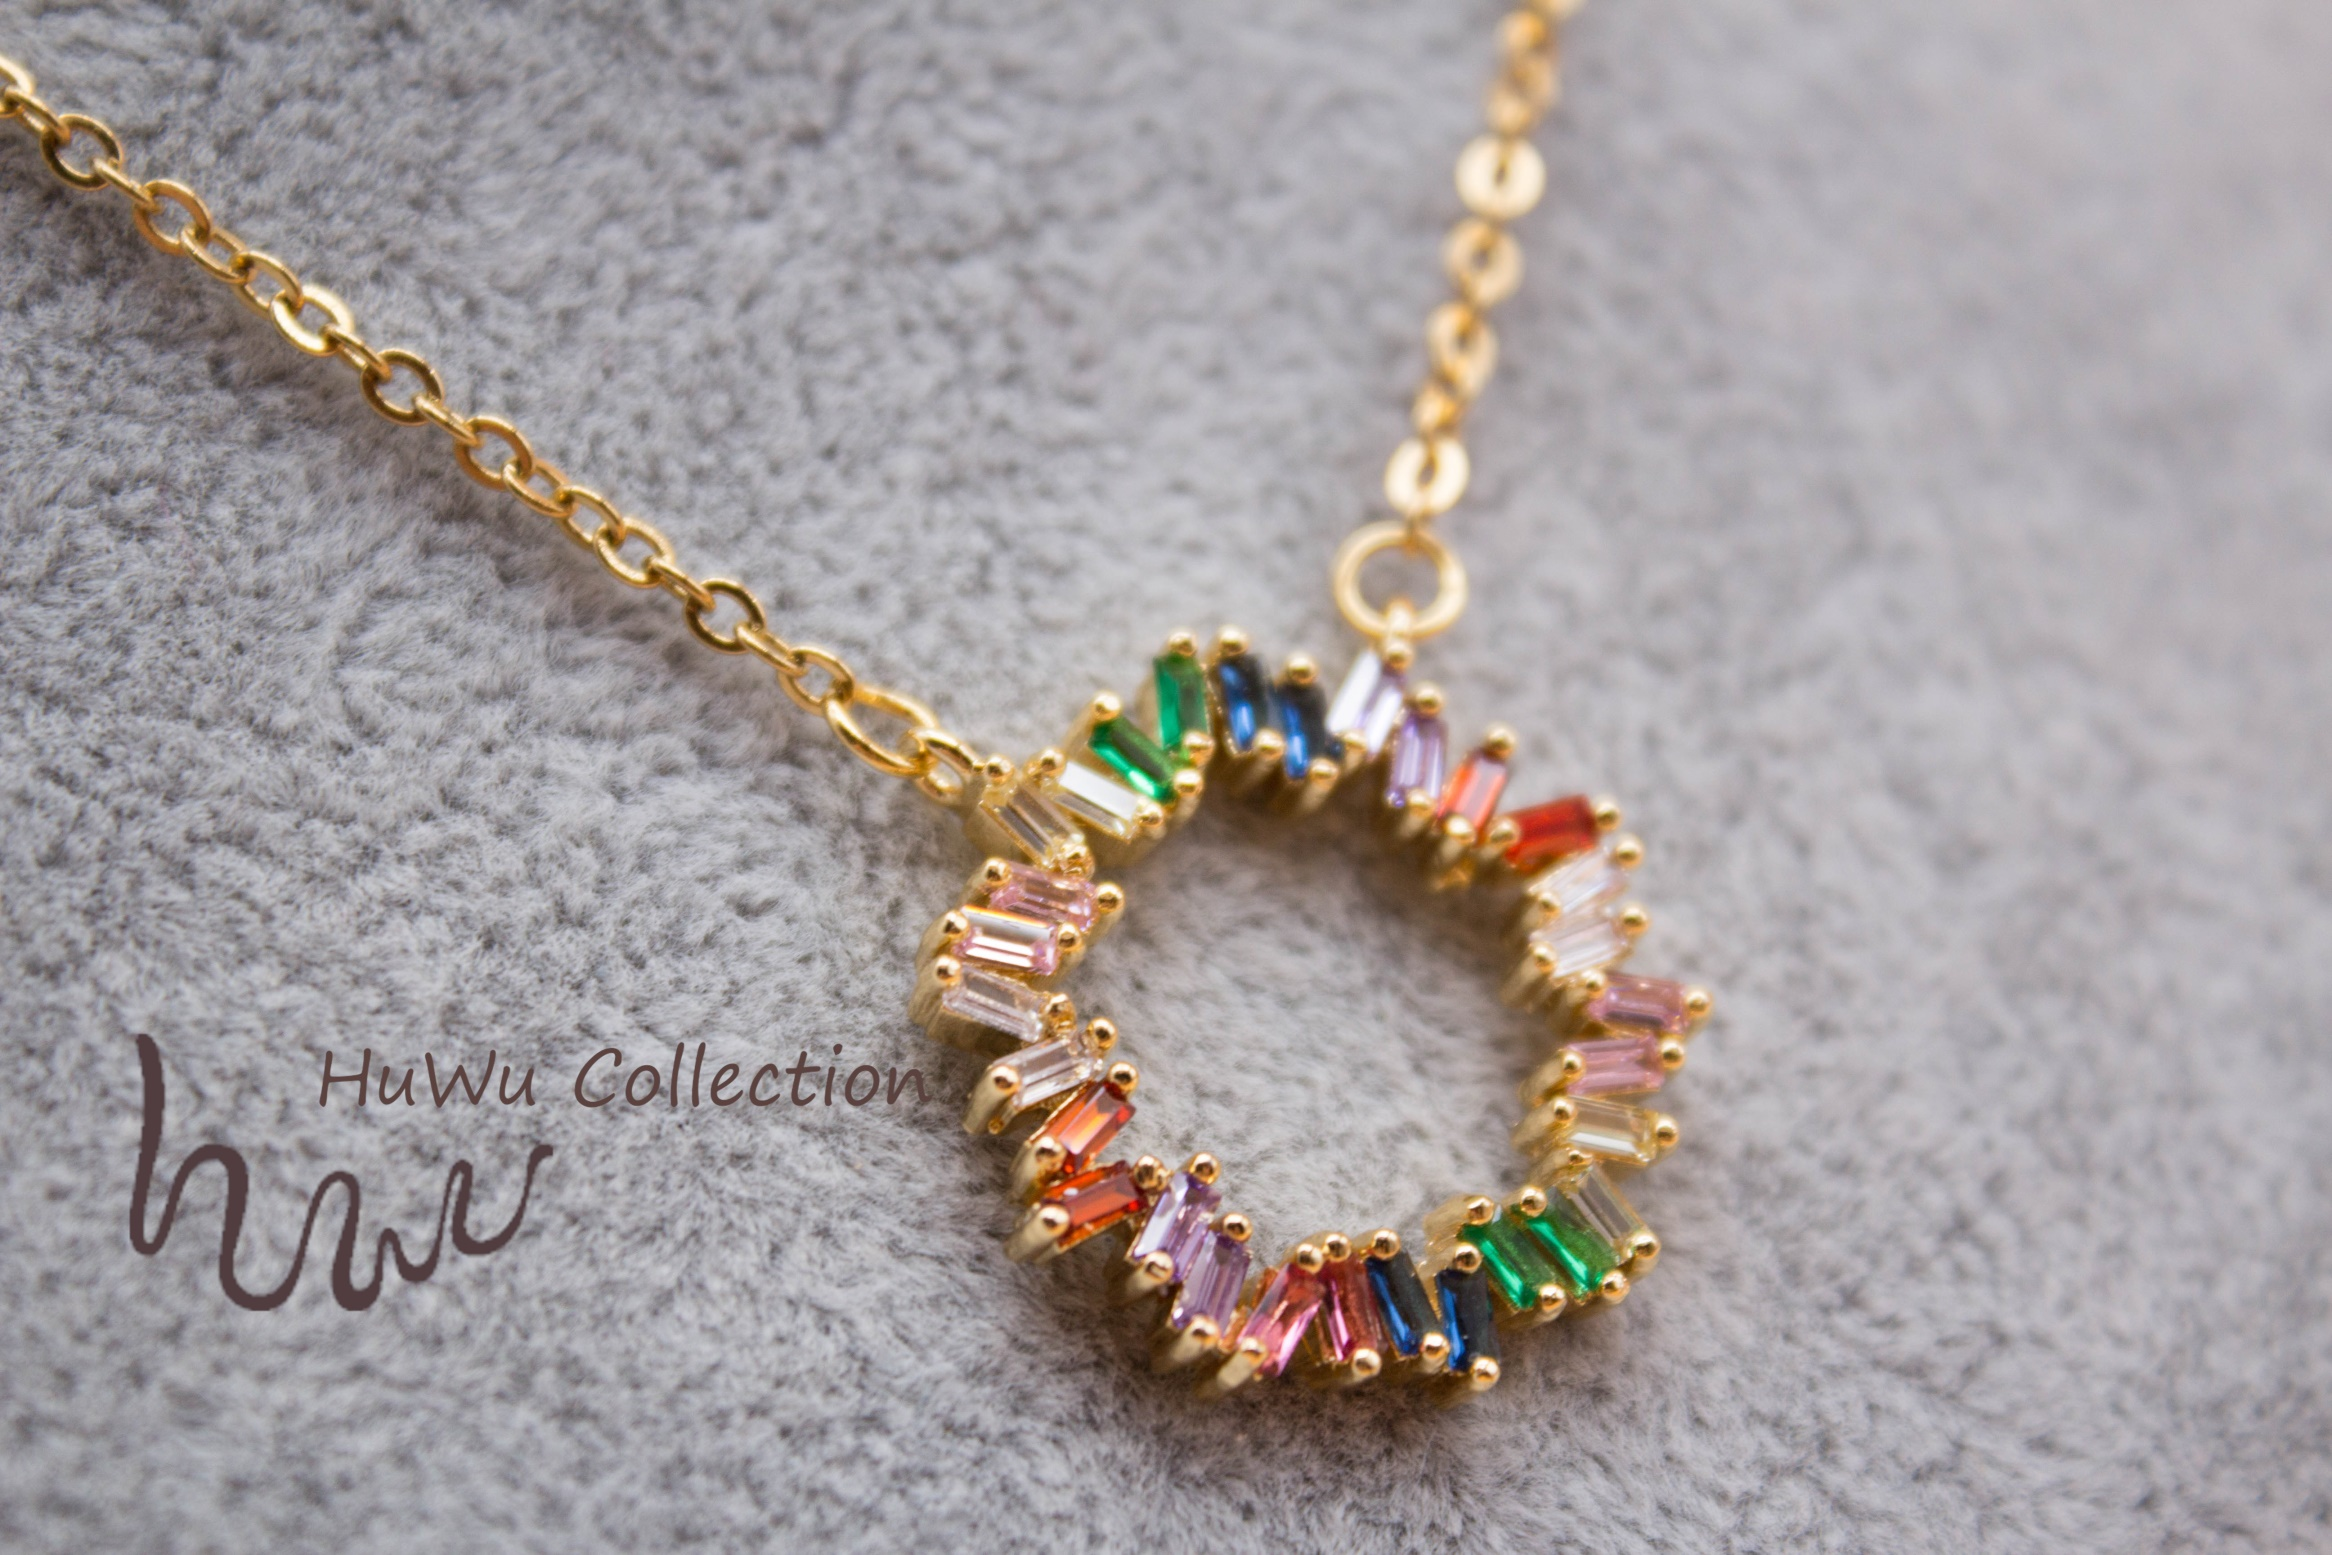 MultiColor Zirconia Necklace for Women Rainbow Luxury Pendant with Plated Gold and Colorful Zircons from HuWu Independent Design